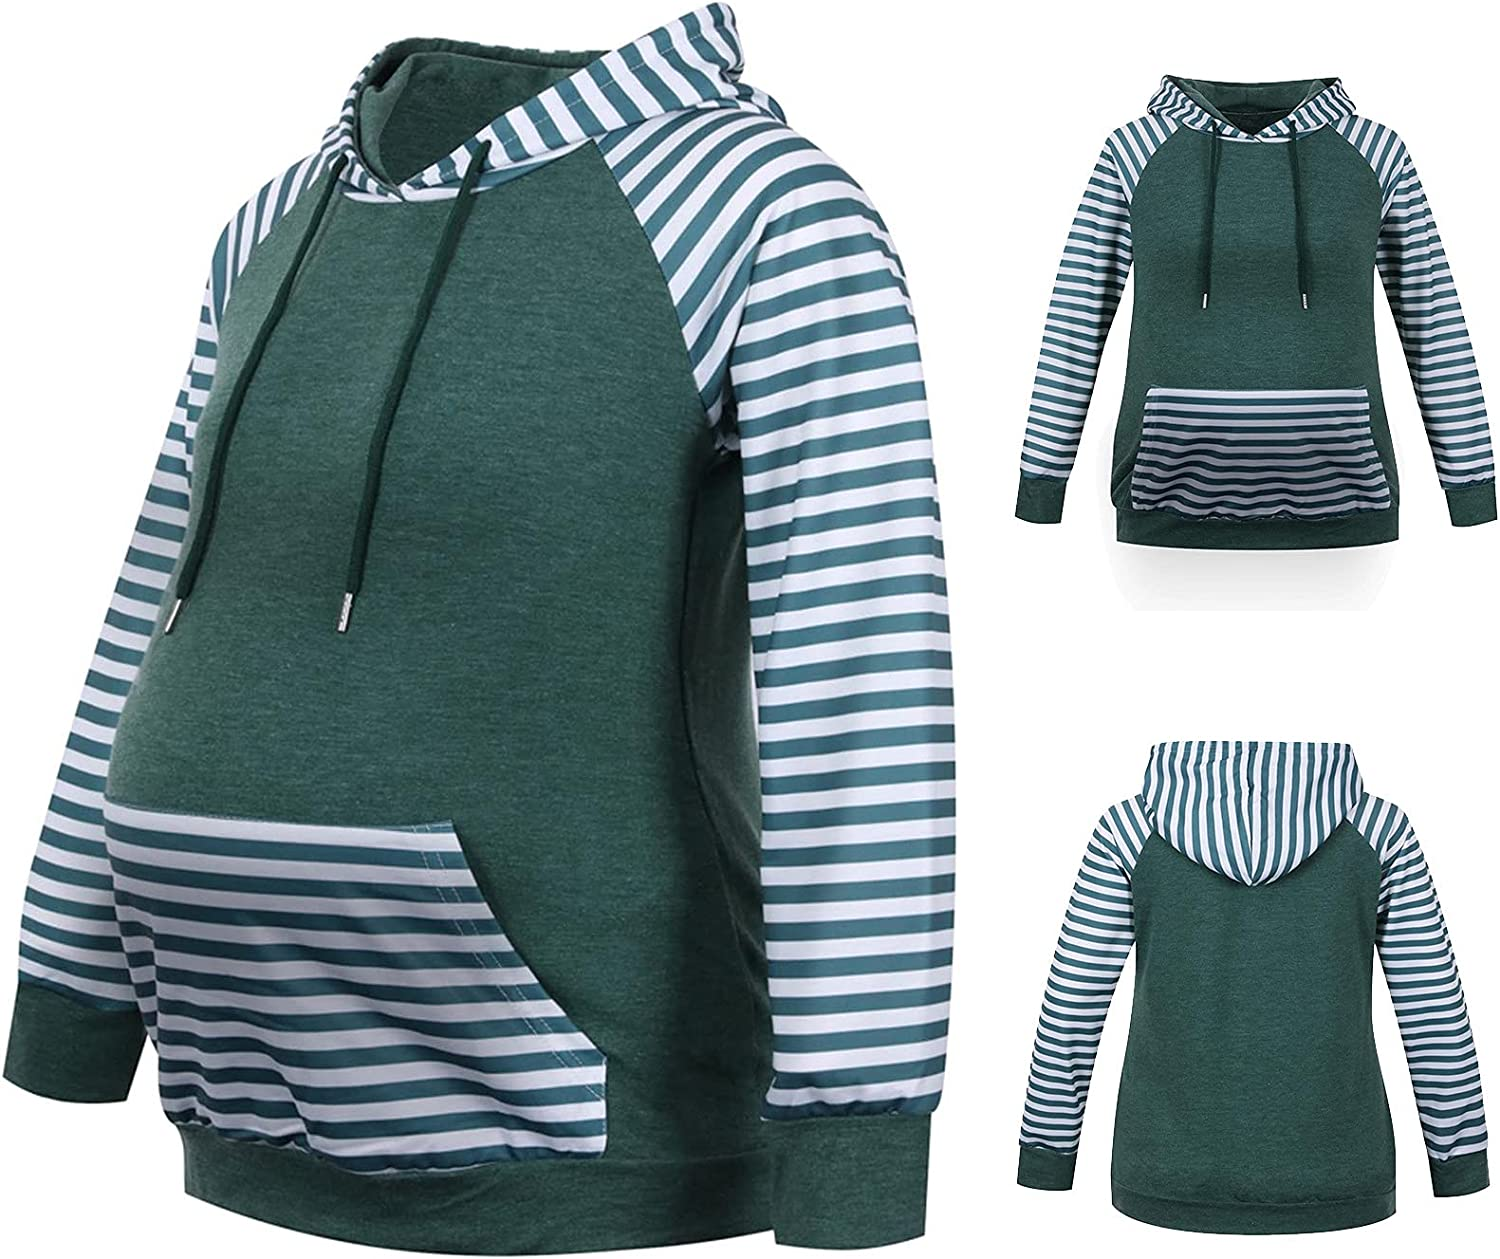 Manufacturer regenerated product Womens Maternity Albuquerque Mall Hoodie Top Sweatshirt Long Colorblock Sl Stripe